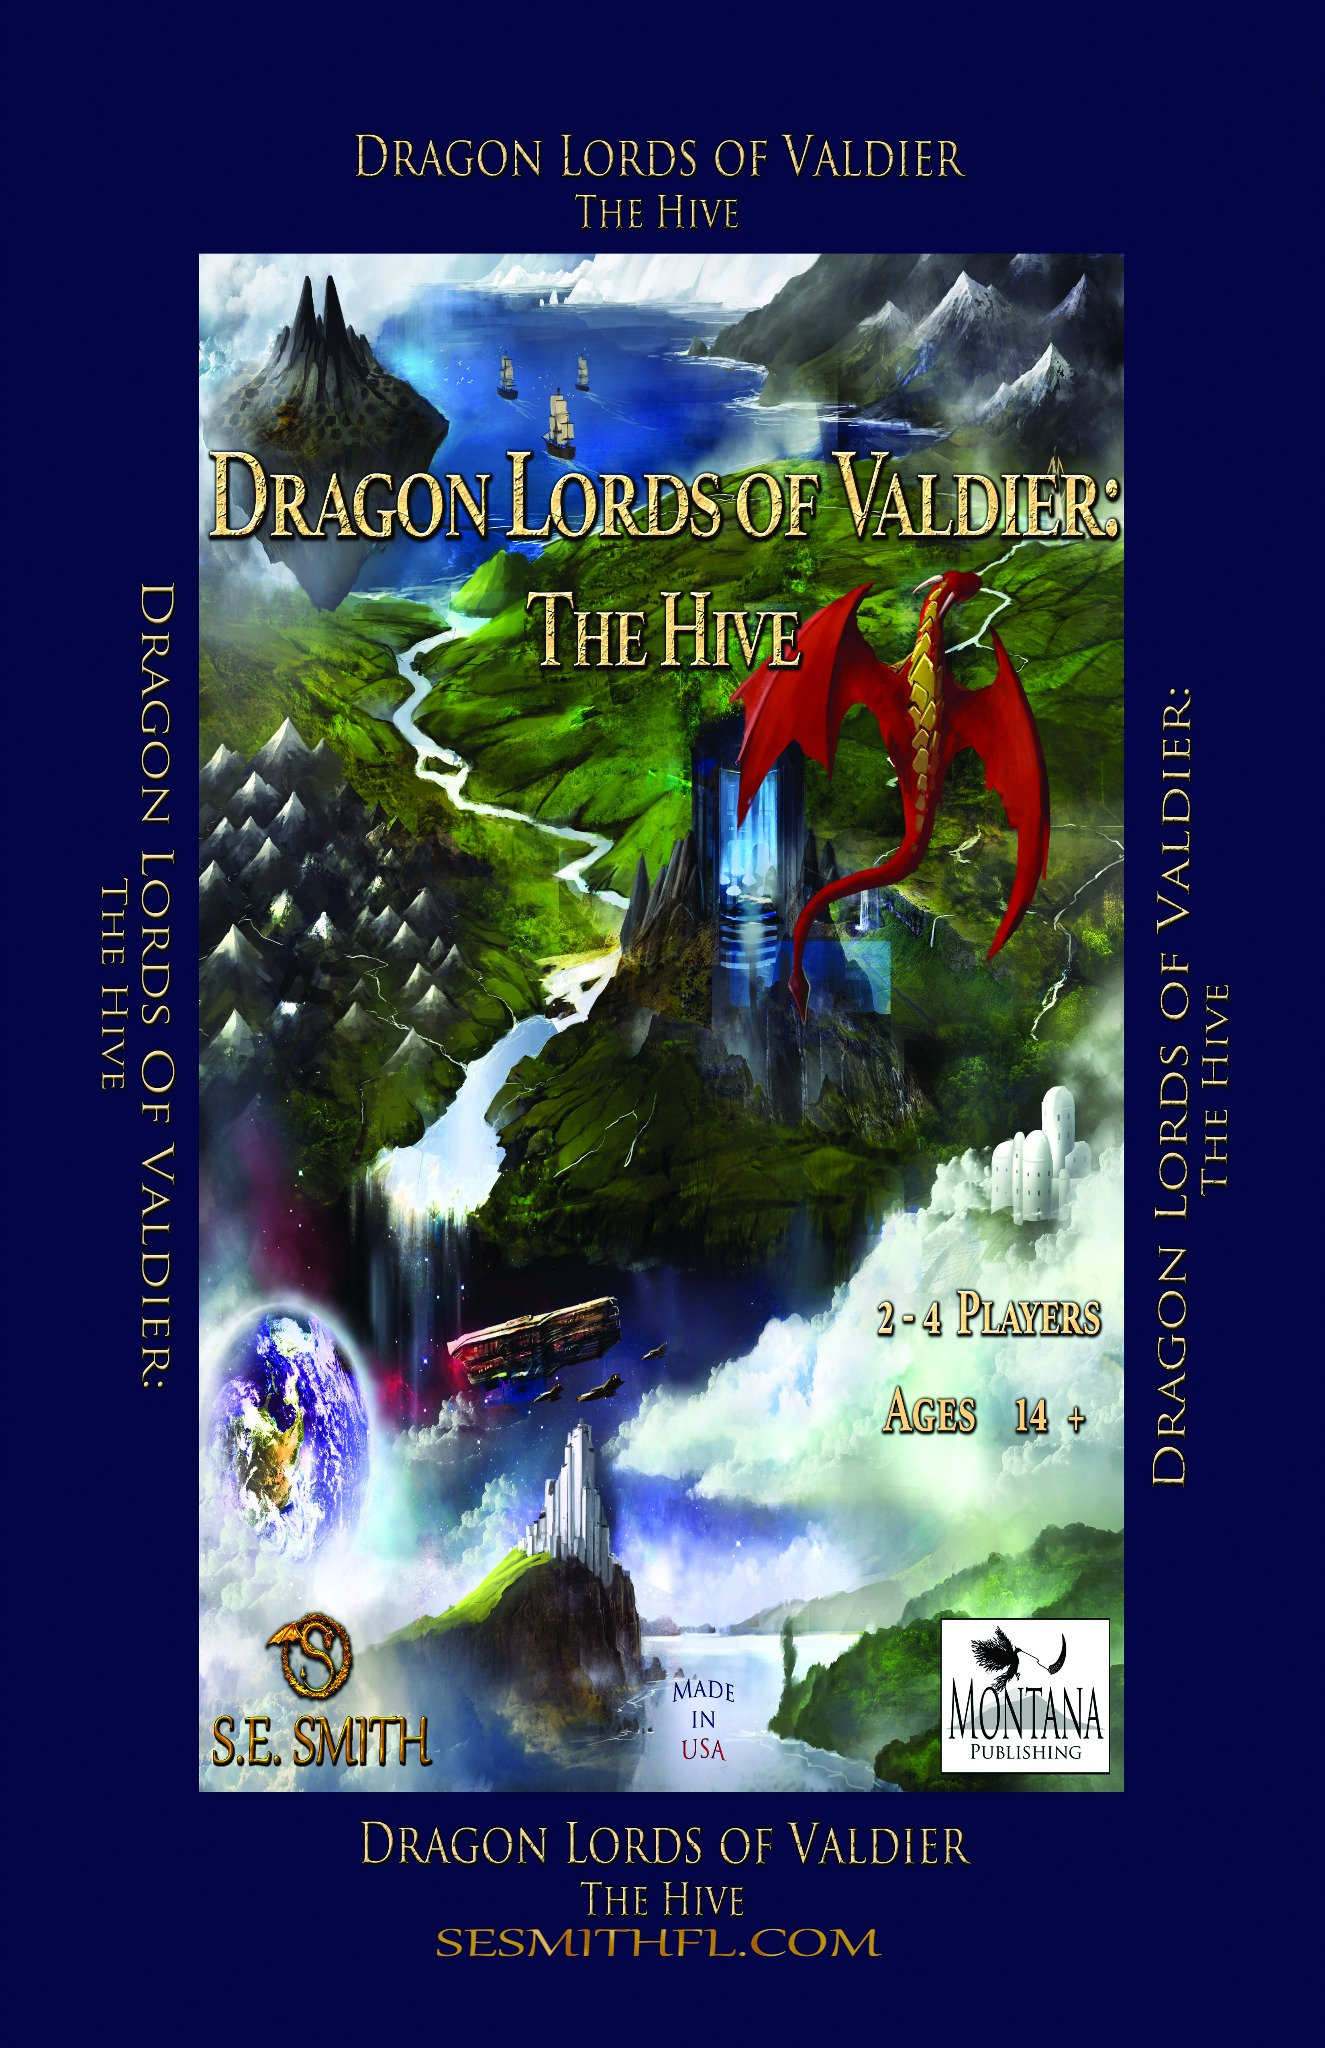 Dragon Lords of Valdier: The Hive Poster (Autographed Poster)